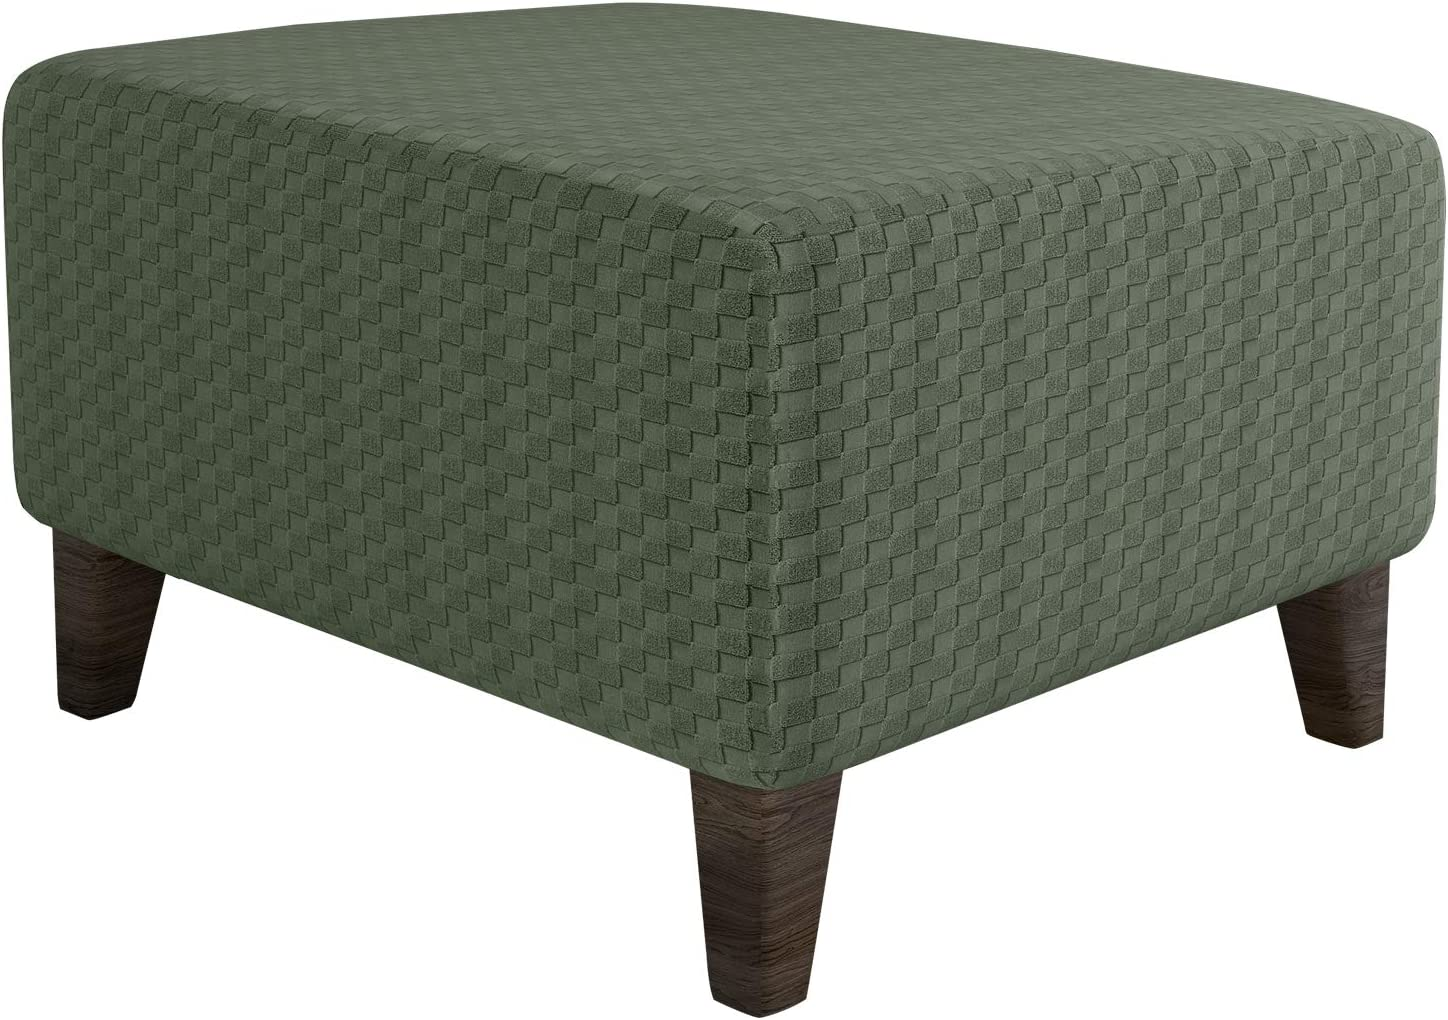 MAXIJIN Newest Jacquard Ottoman Slipcovers Folding Storage Stool Furniture Protector Cover Soft Thick Rectangle Foot Rest Slipcover with Elastic Bottom (Ottoman Small, Army Green)